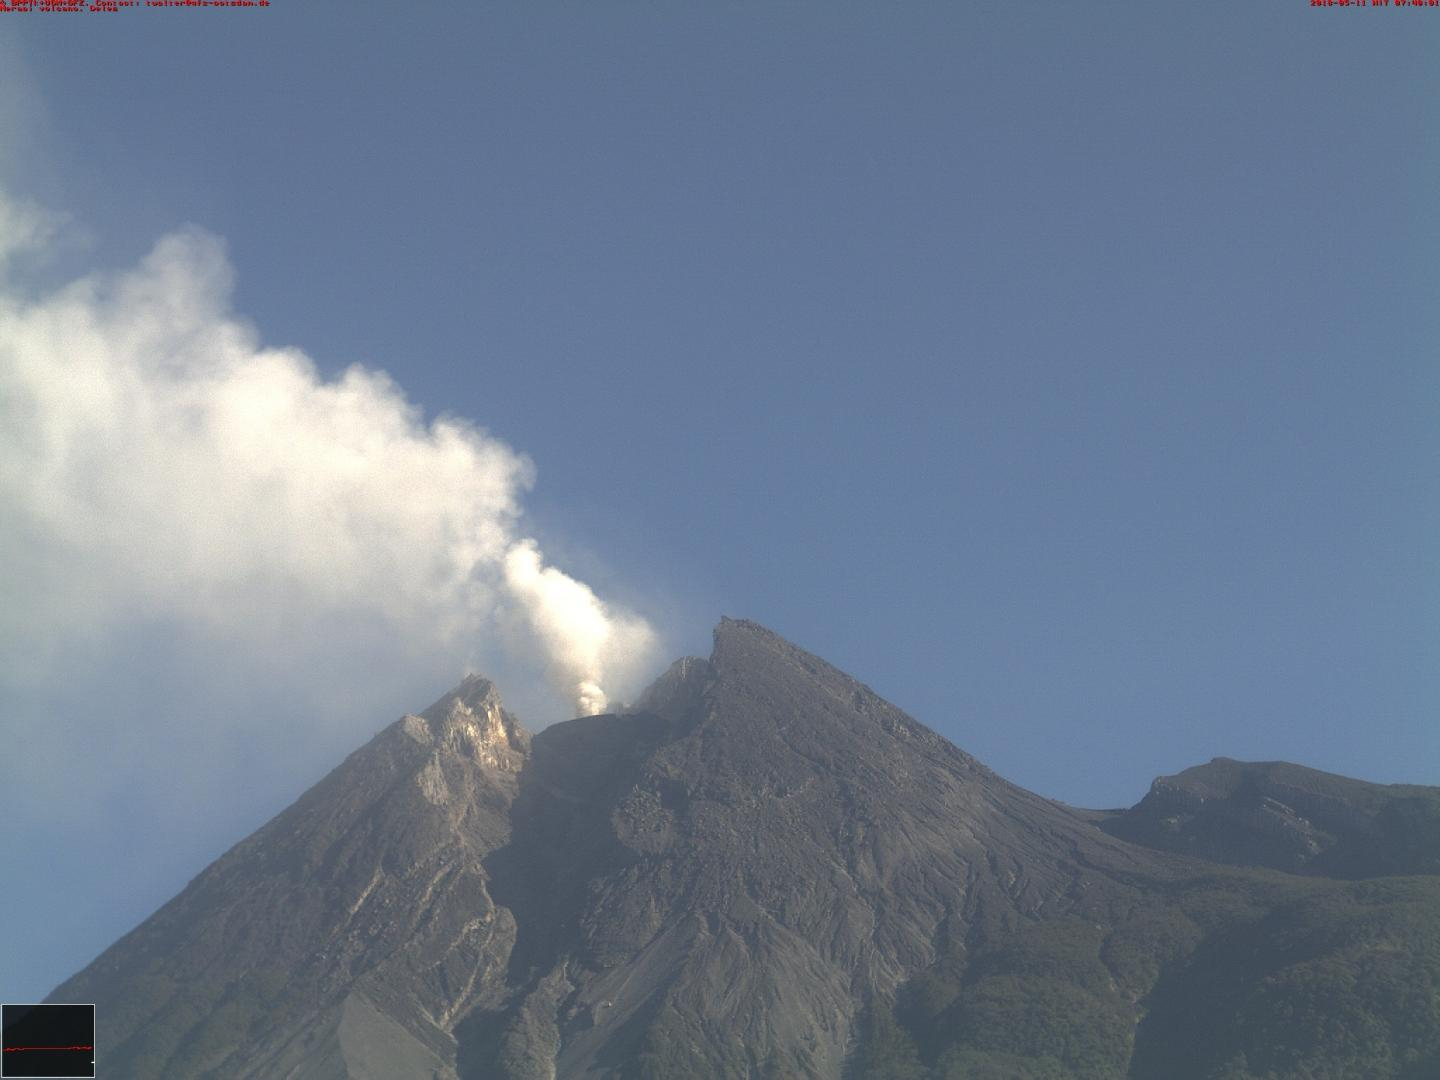 When will the next eruption take place? Indonesia's Mount Merapi provides clues - International Business Times, Singapore Edition